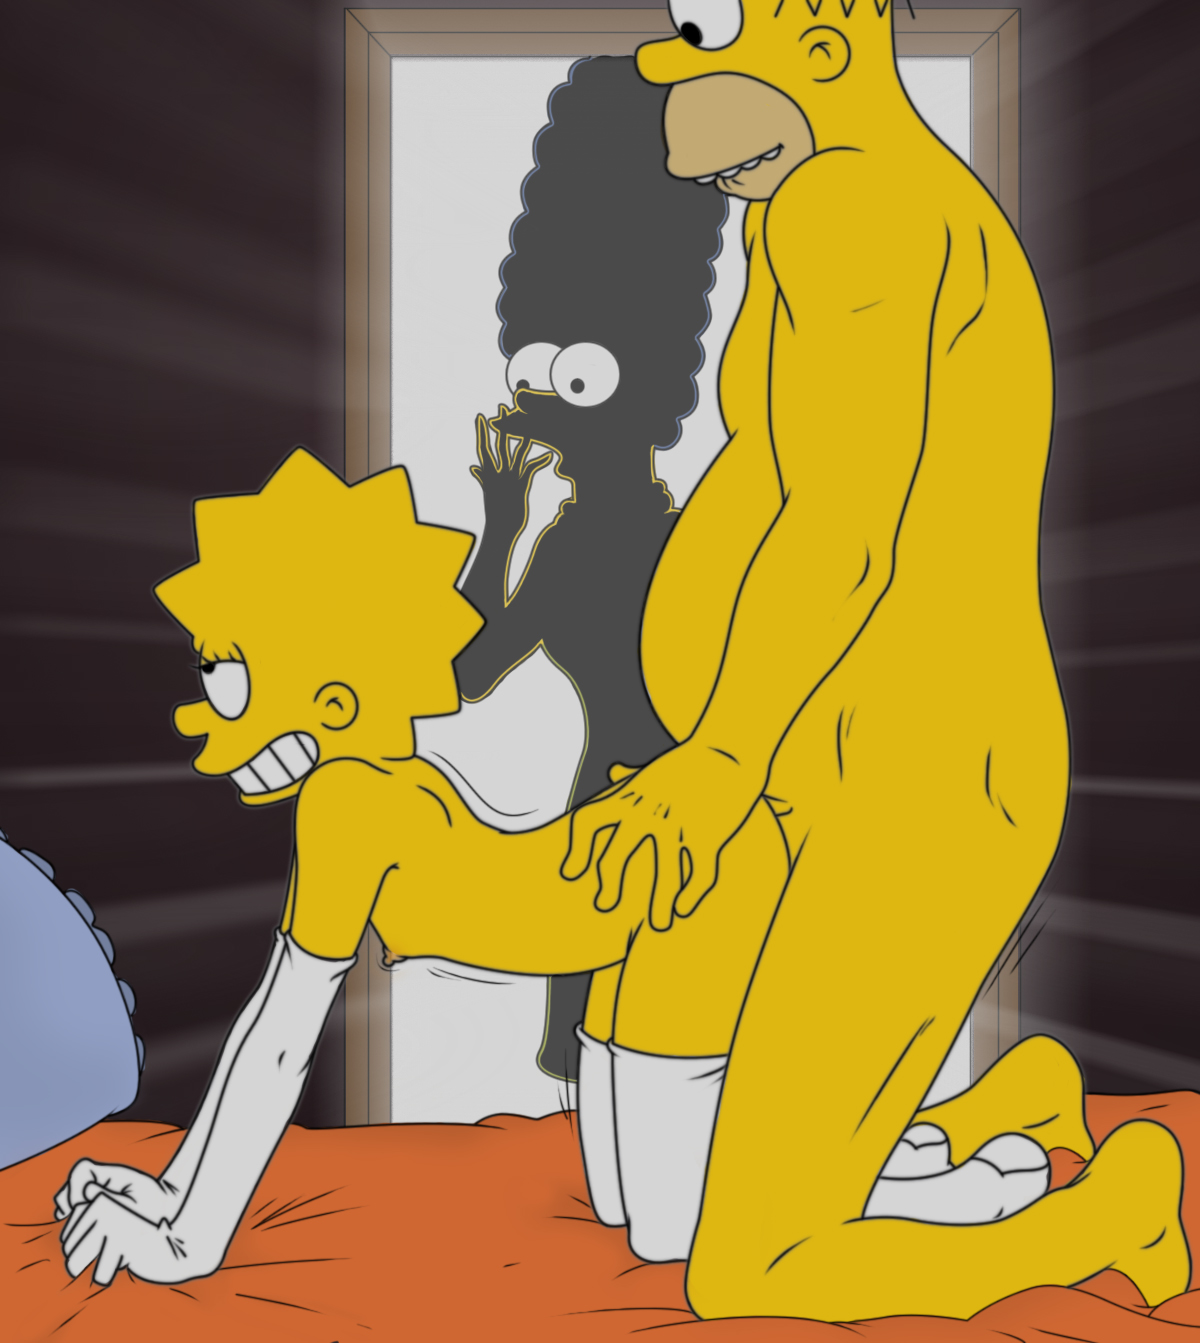 Naked The sex hard simpsons having